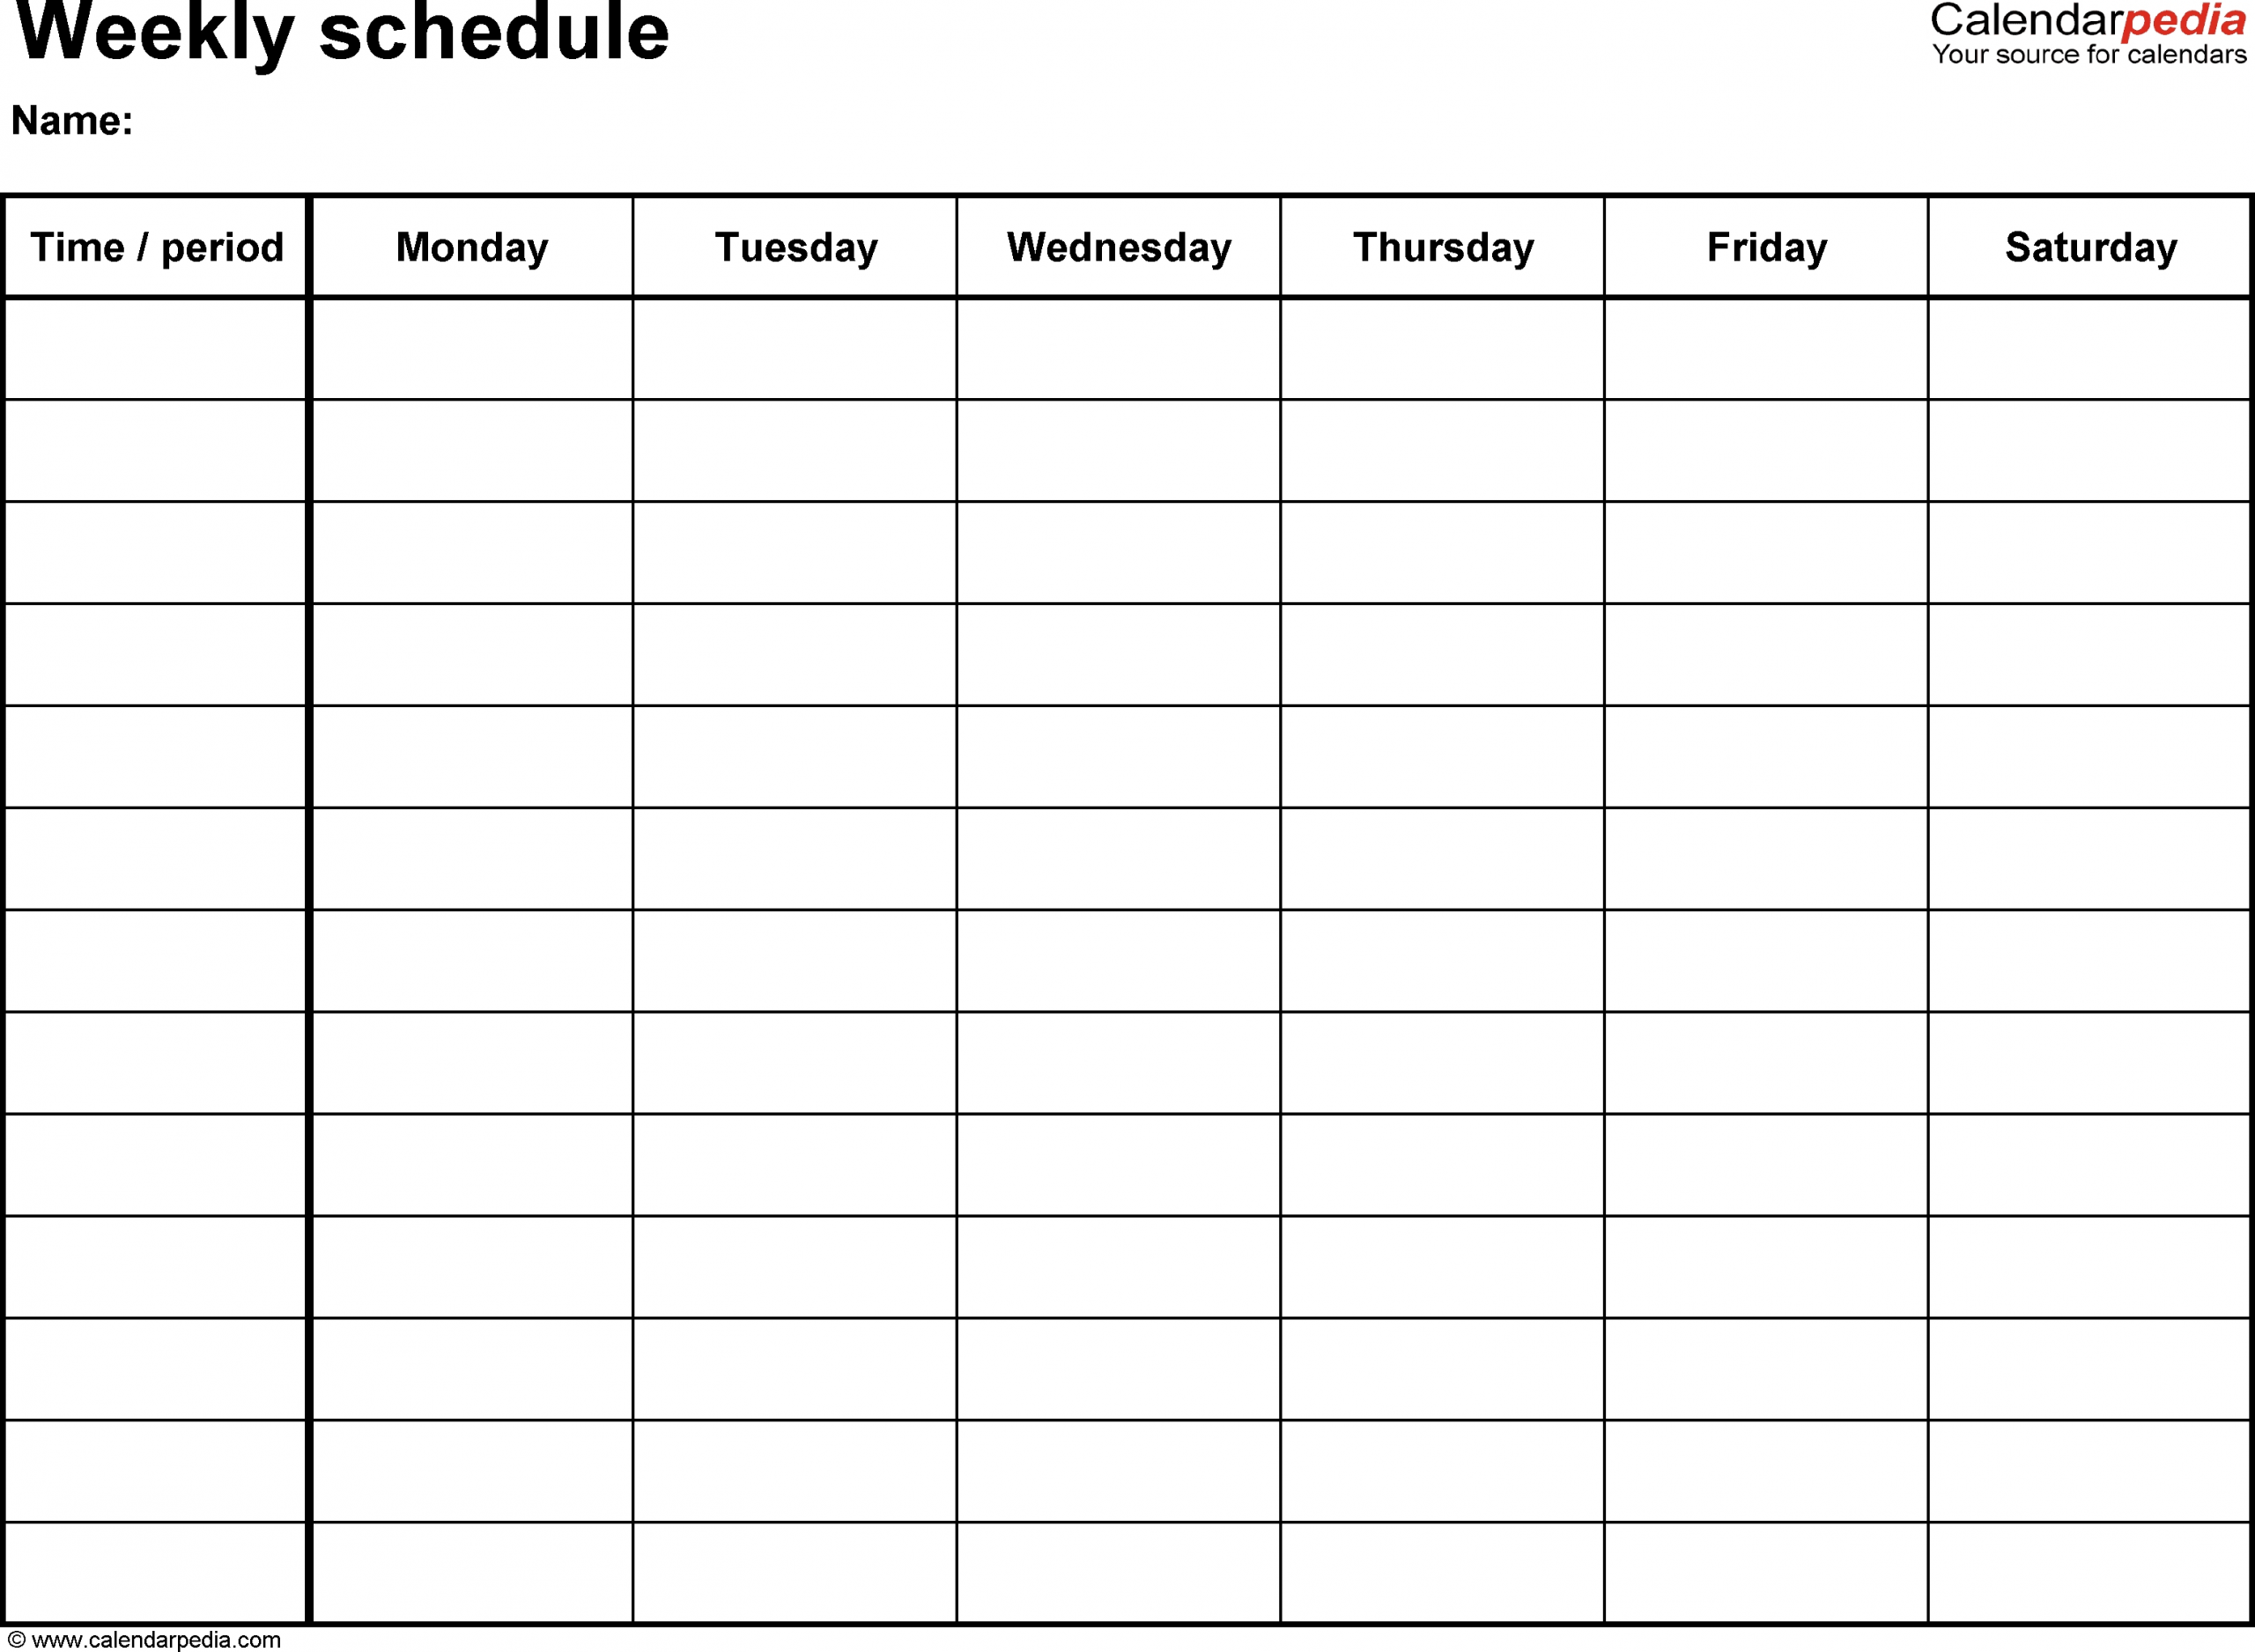 Blank Calendar Monday To Friday | Calendar Template Printable Monday To Friday Tempate Printable